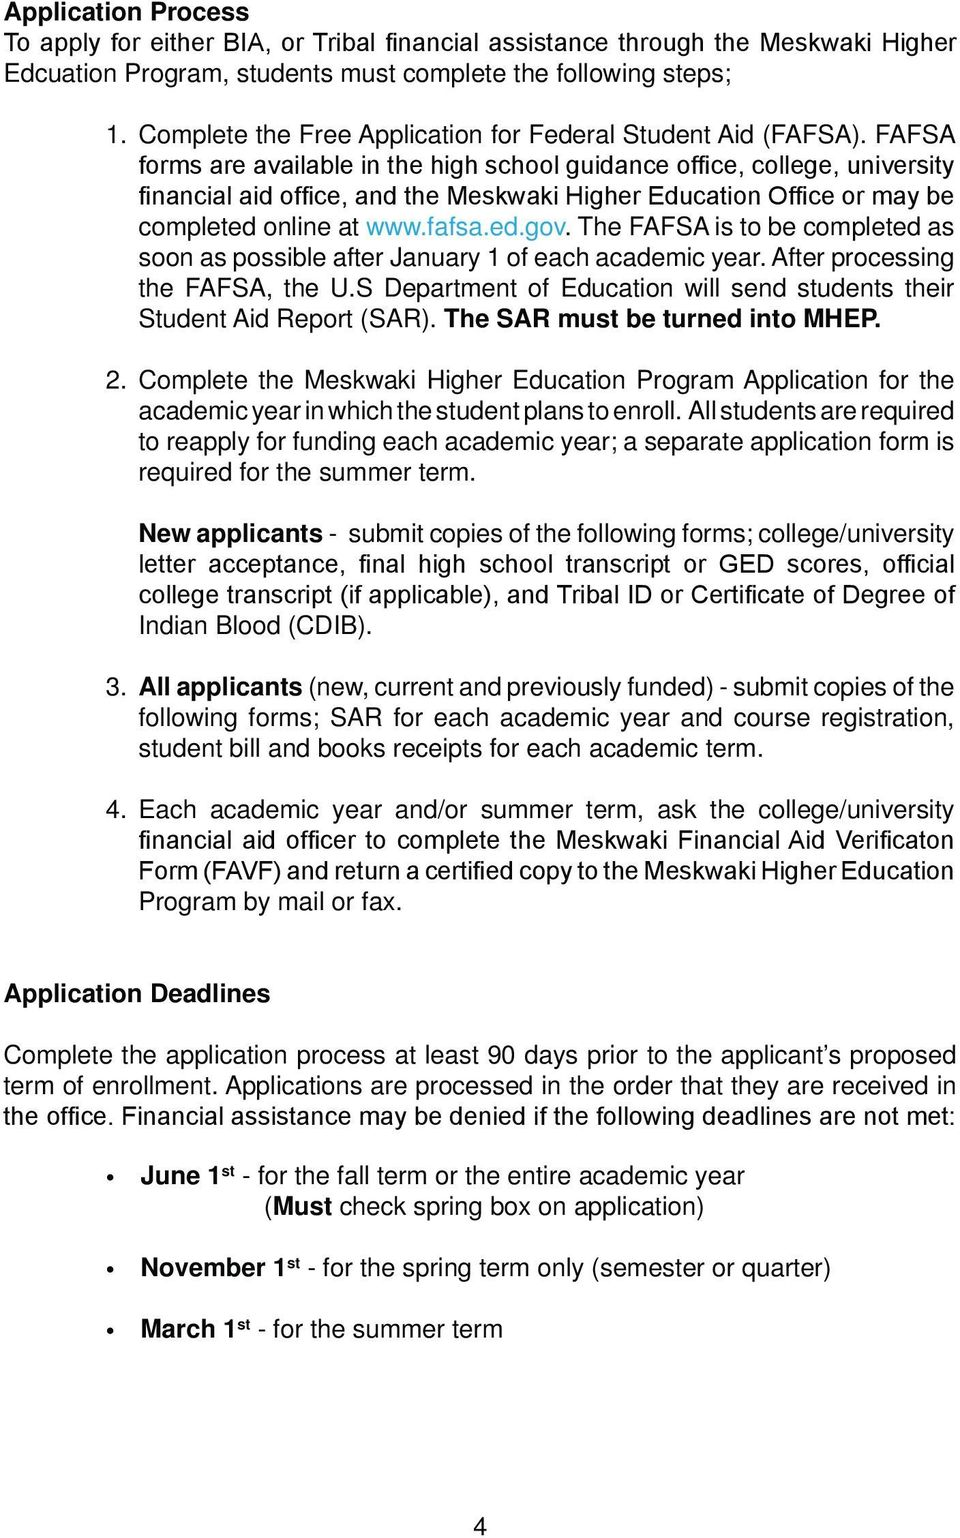 The SAR must be turned into MHEP. Complete the Meskwaki Higher Education Program Application for the academic year in which the student plans to enroll.